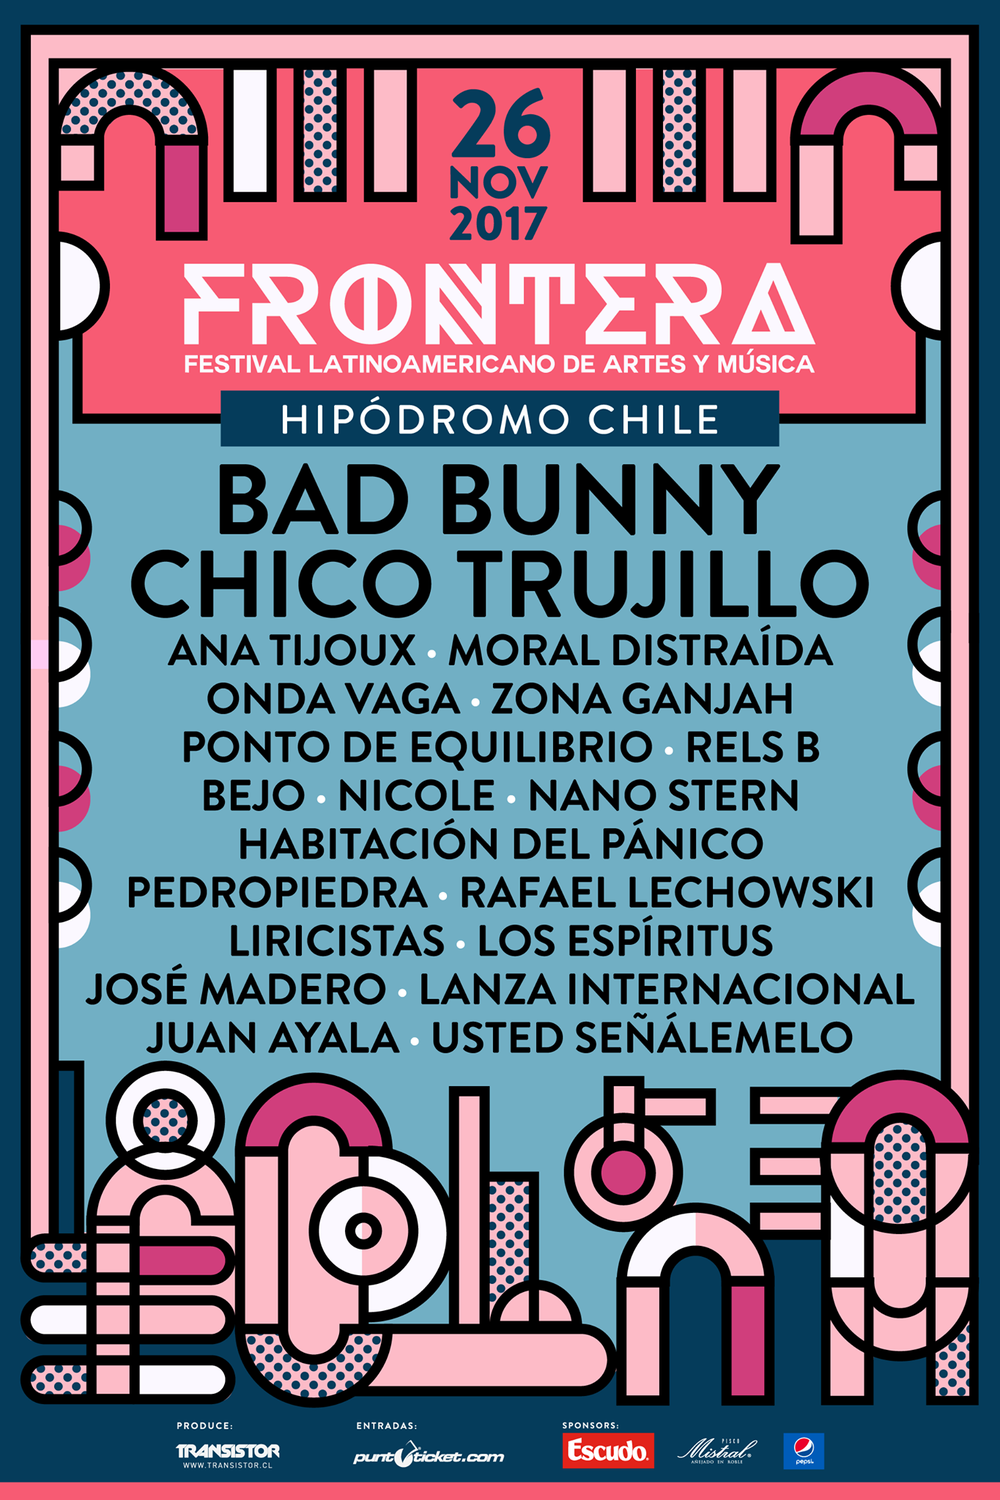 Frontera 2017 line up.png